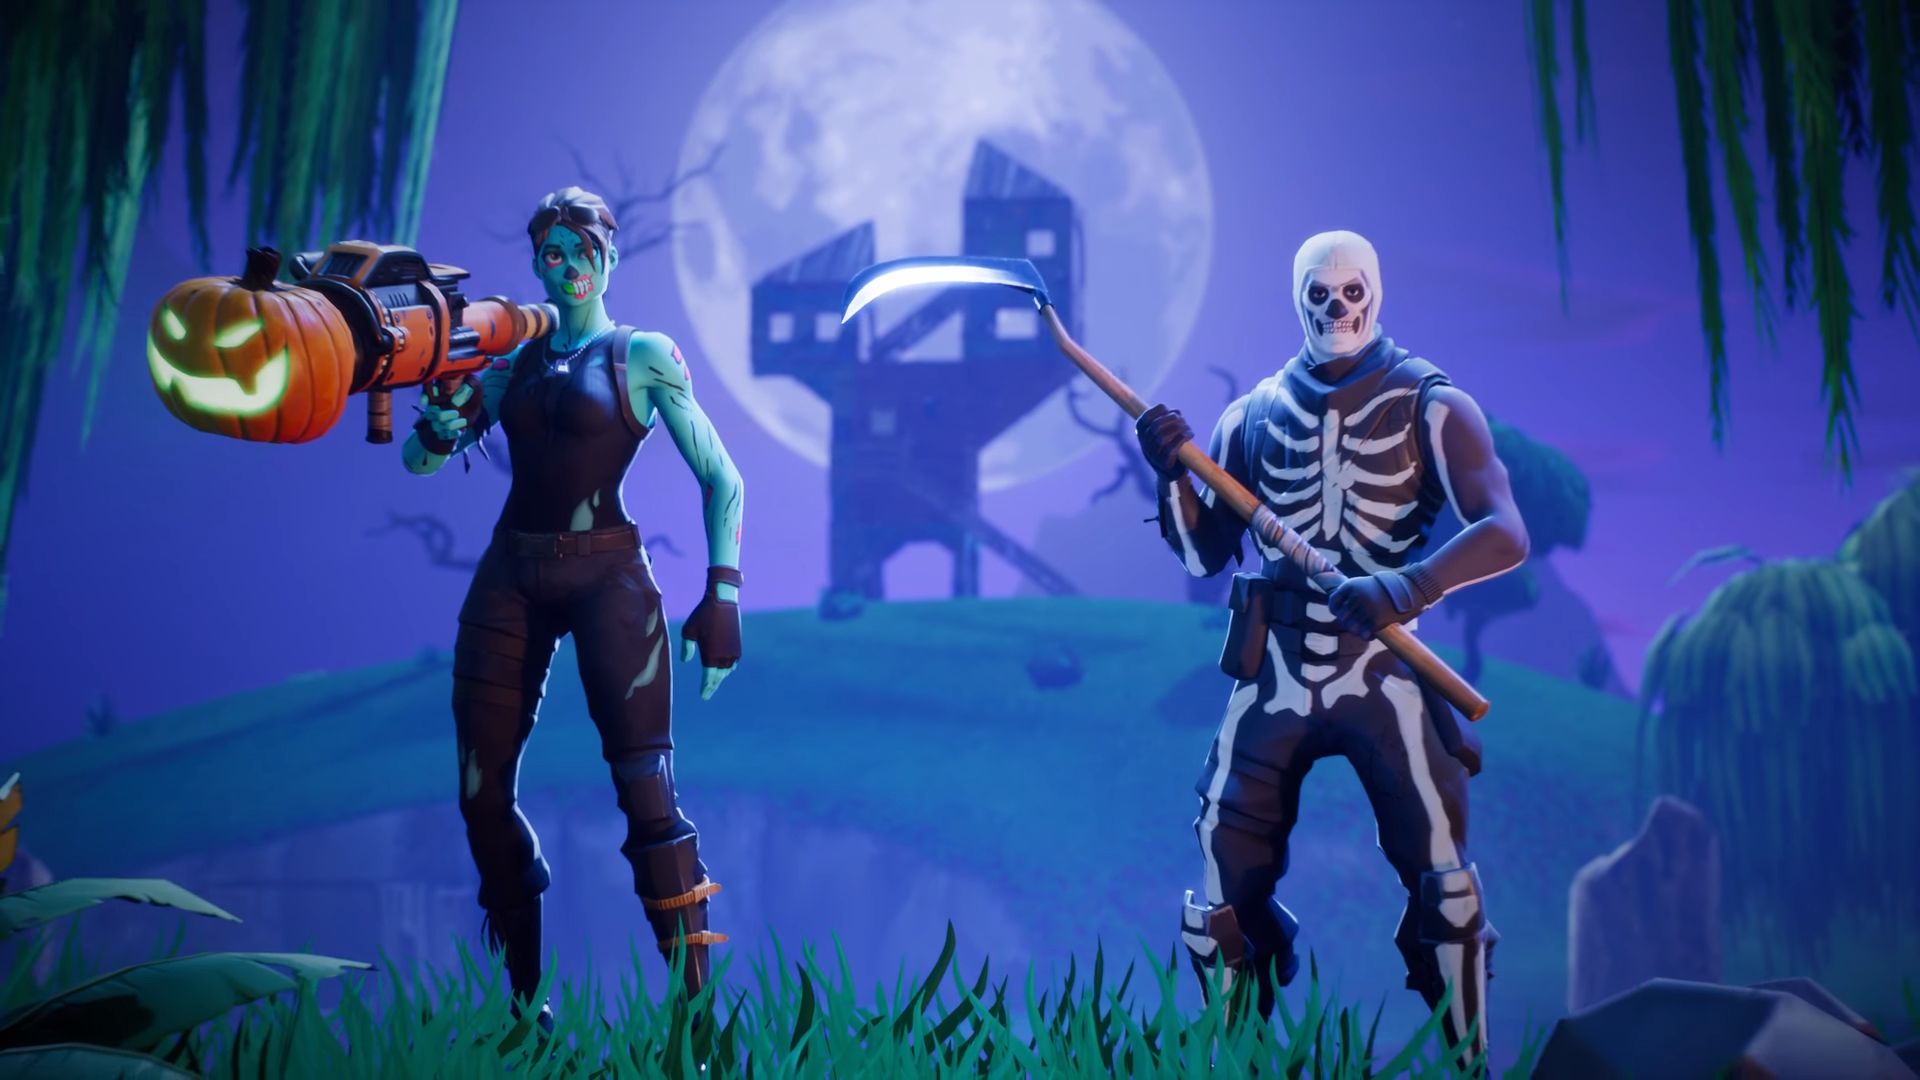 520 Fortnite Hd Wallpapers Background Images Wallpaper Abyss Complete and updated list of cool fortnite wallpapers in hd to download for your phone or computer. 520 fortnite hd wallpapers background